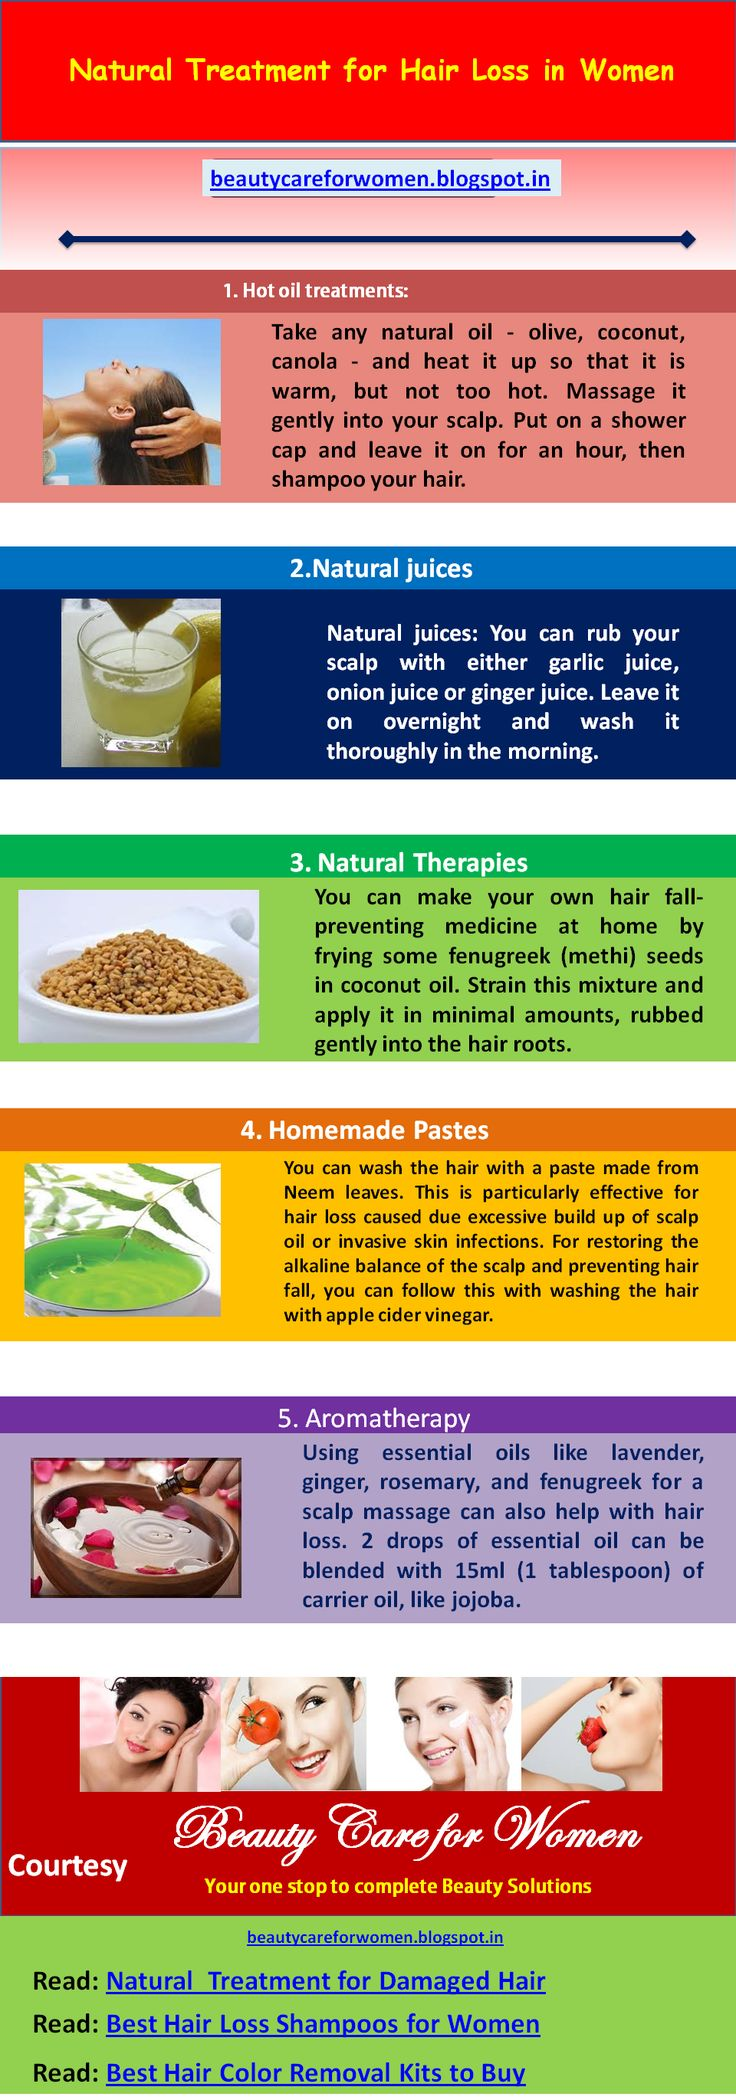 Natural Treatment for Hair Loss in Women and the Best Hair Loss Shampoos you must buy